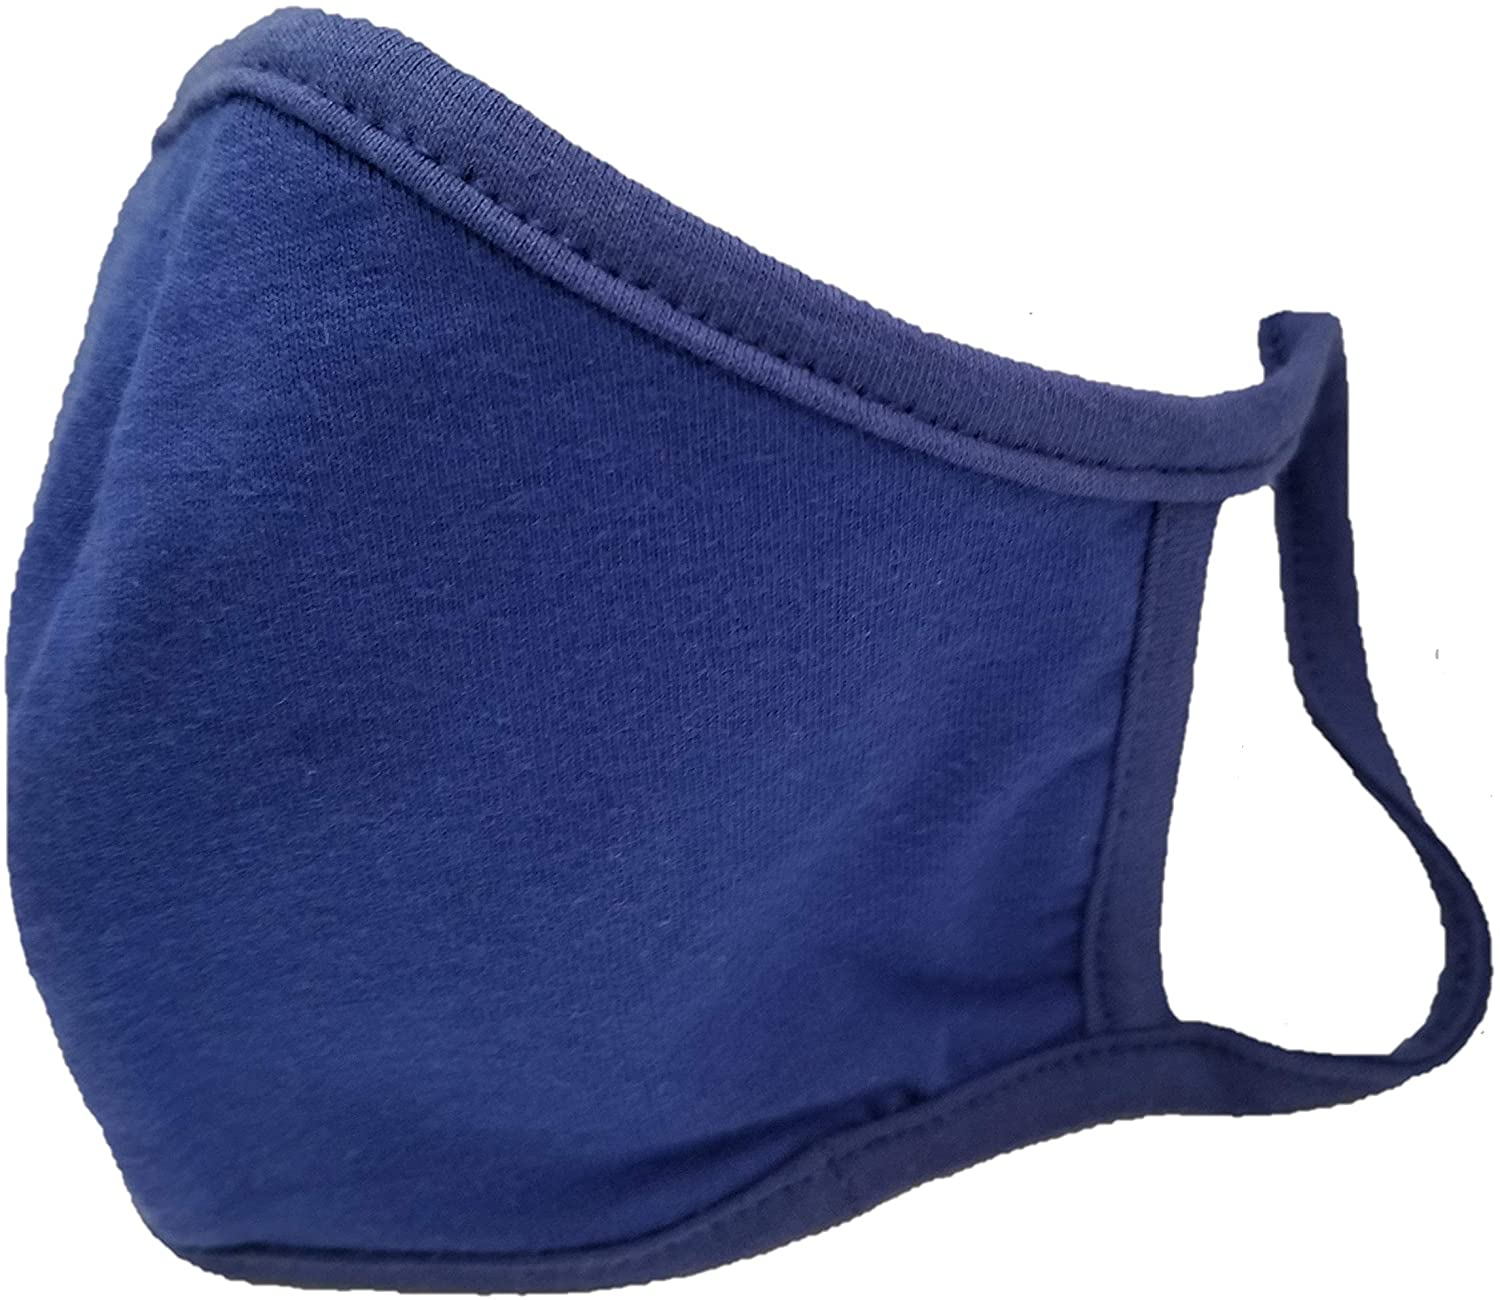 (MADE IN USA) Washable & Reusable Cotton Facial Mask - Face Mask & Coverings(Blue-5 Mask)